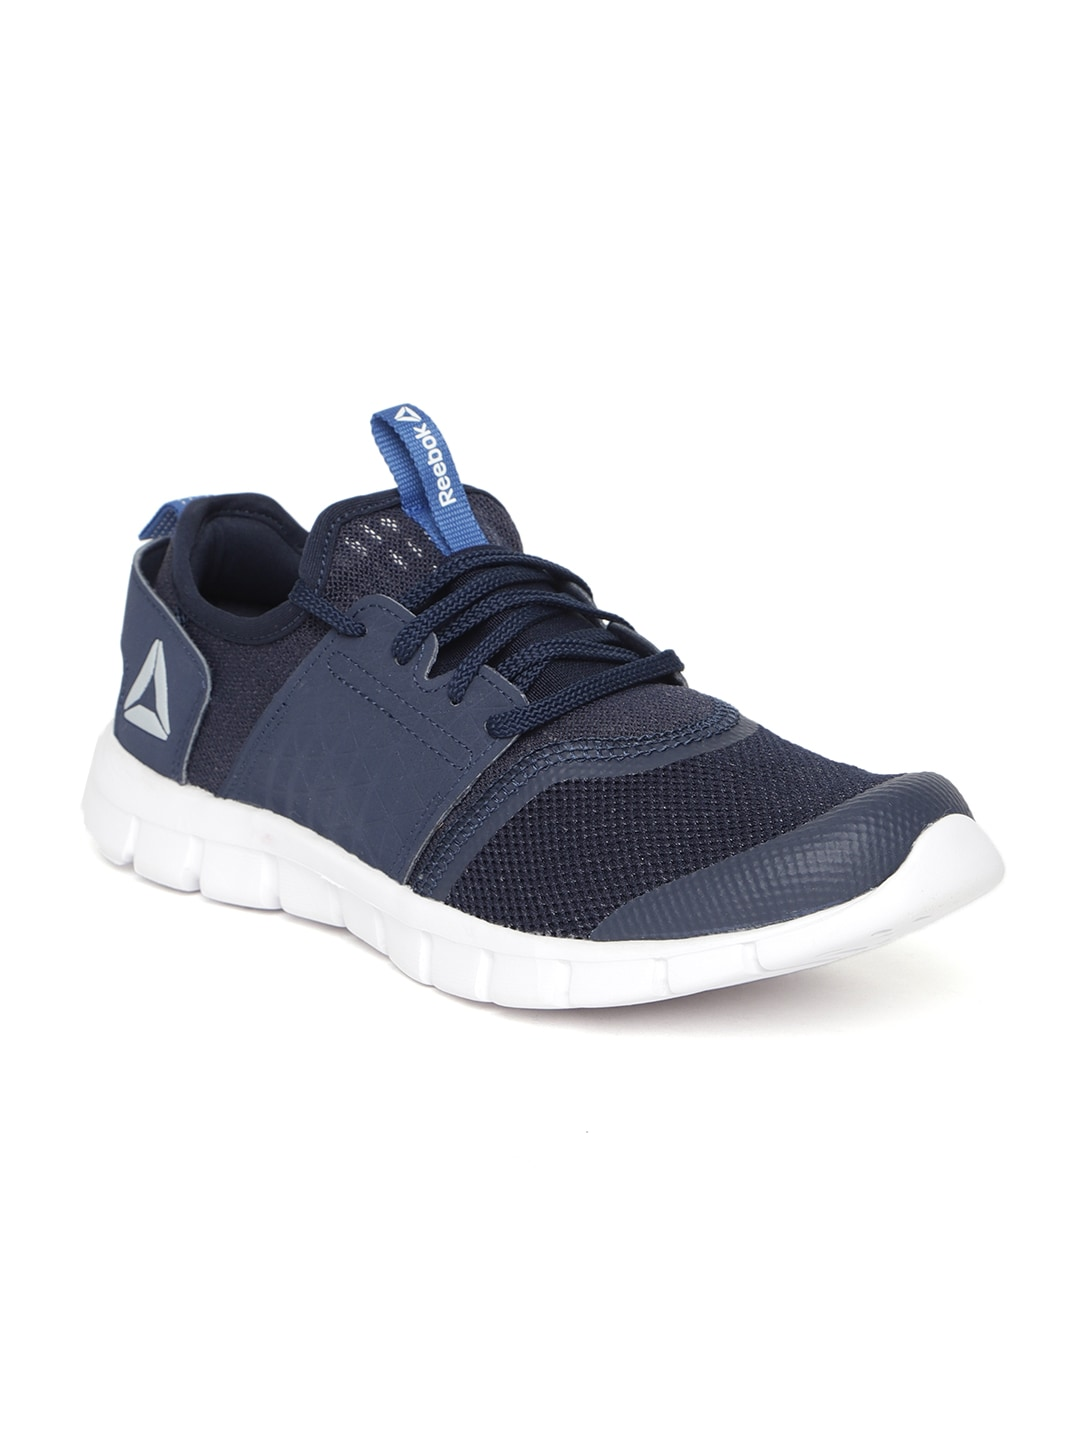 753a59b82ff81a Reebok Shoes - Buy Reebok Shoes For Men   Women Online